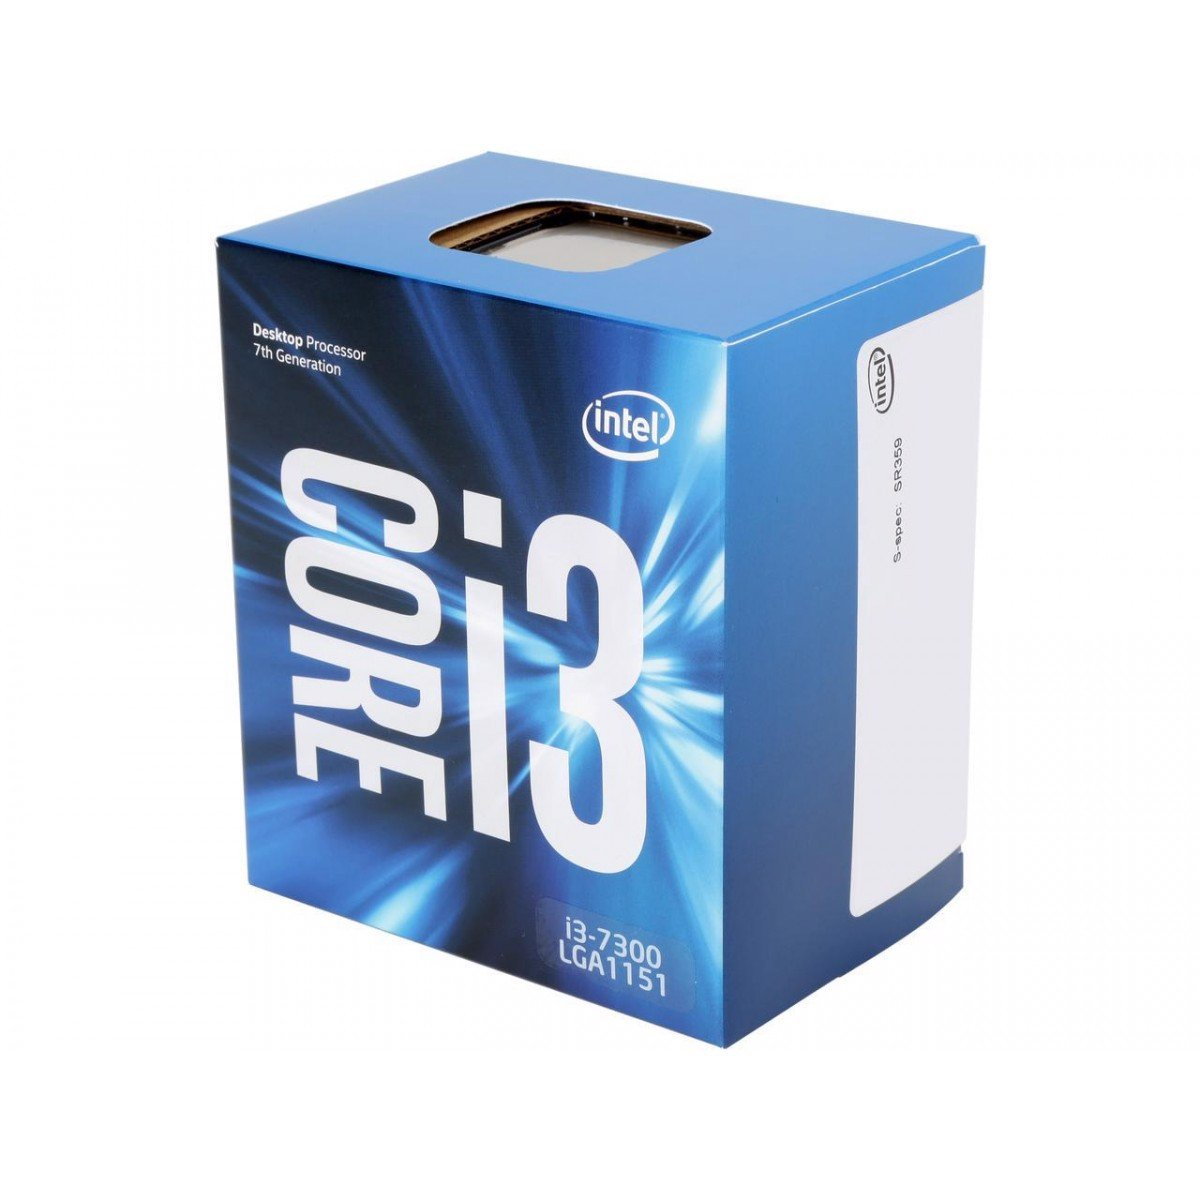 CPU Intel Core i3 7300 (4.0Ghz/ 4Mb cache) Kabylake